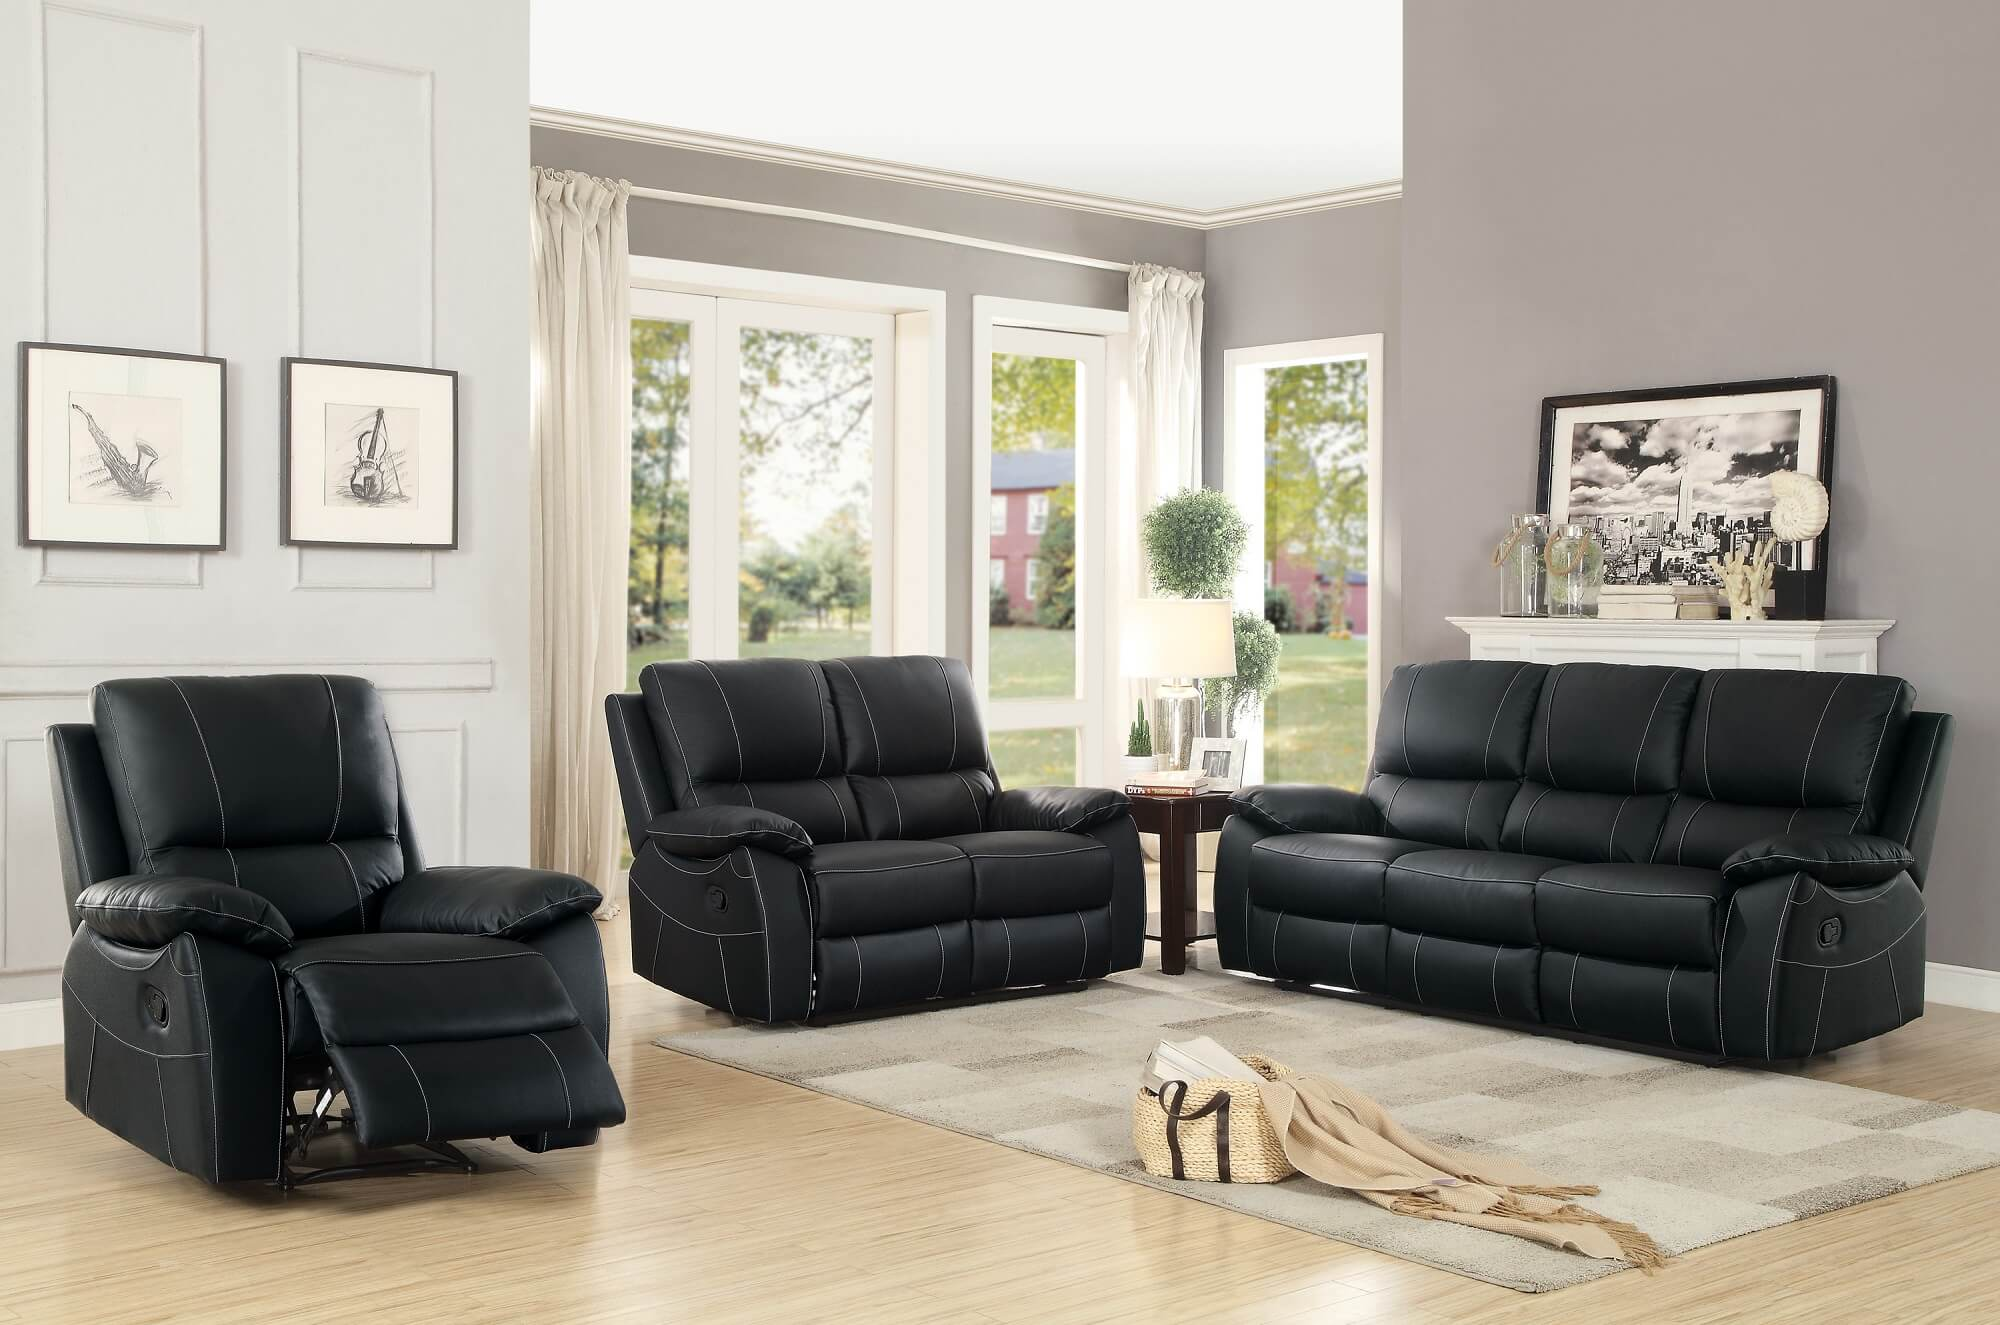 Greeley Top Grain Black Leather Reclining Sofa Set By Homelegance